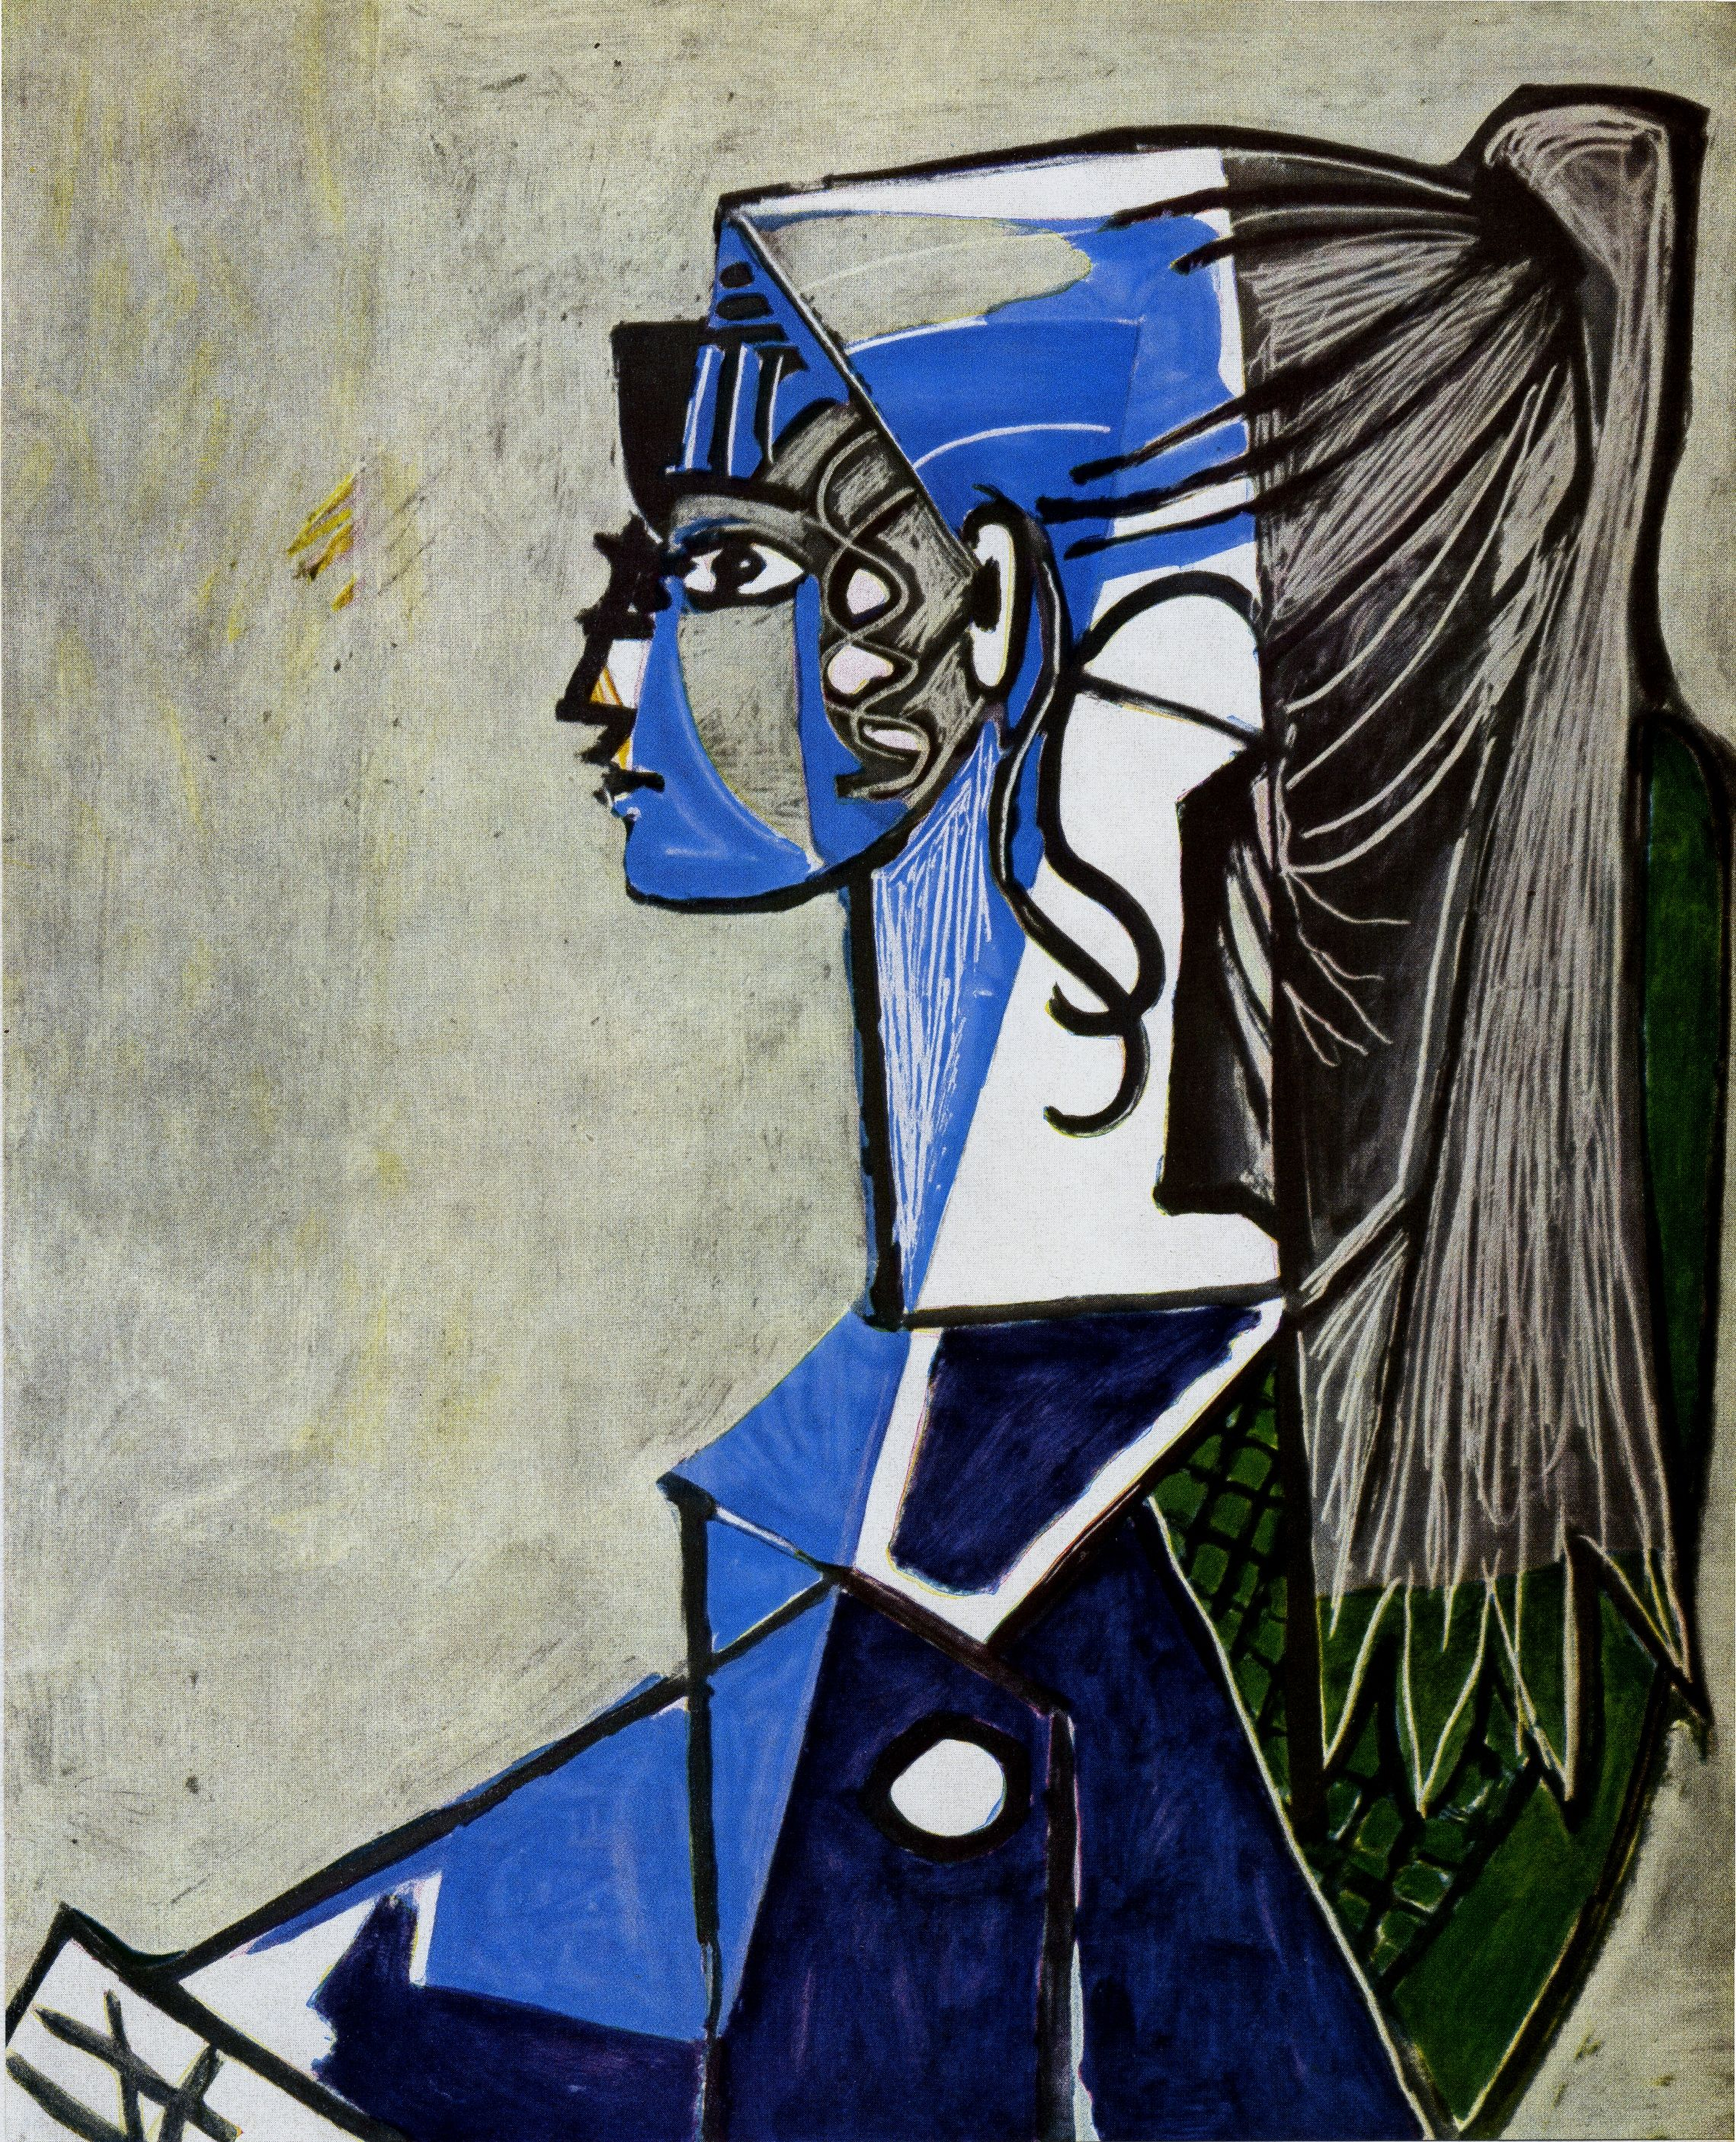 Pin by Stellarth on BELARTH   Pinterest   Picasso paintings, Picasso ...